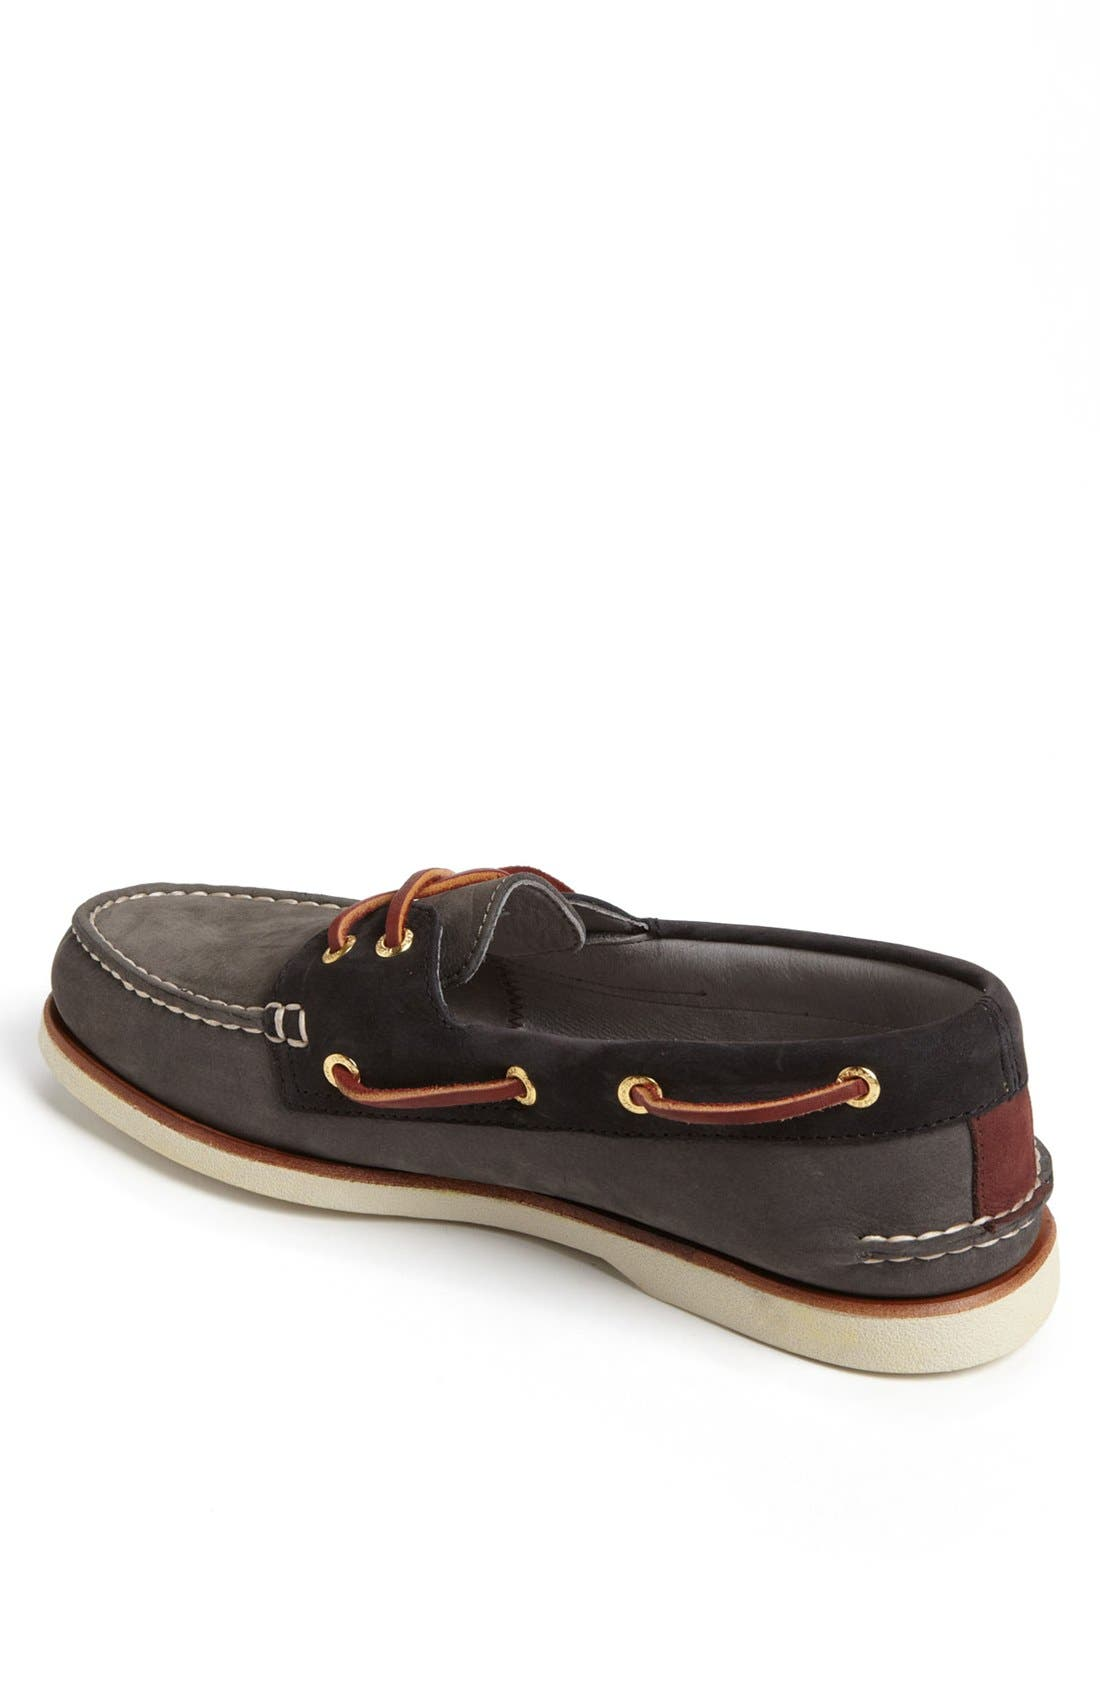 Alternate Image 2  - Sperry Top-Sider® 'Gold Cup - Authentic Original' Boat Shoe